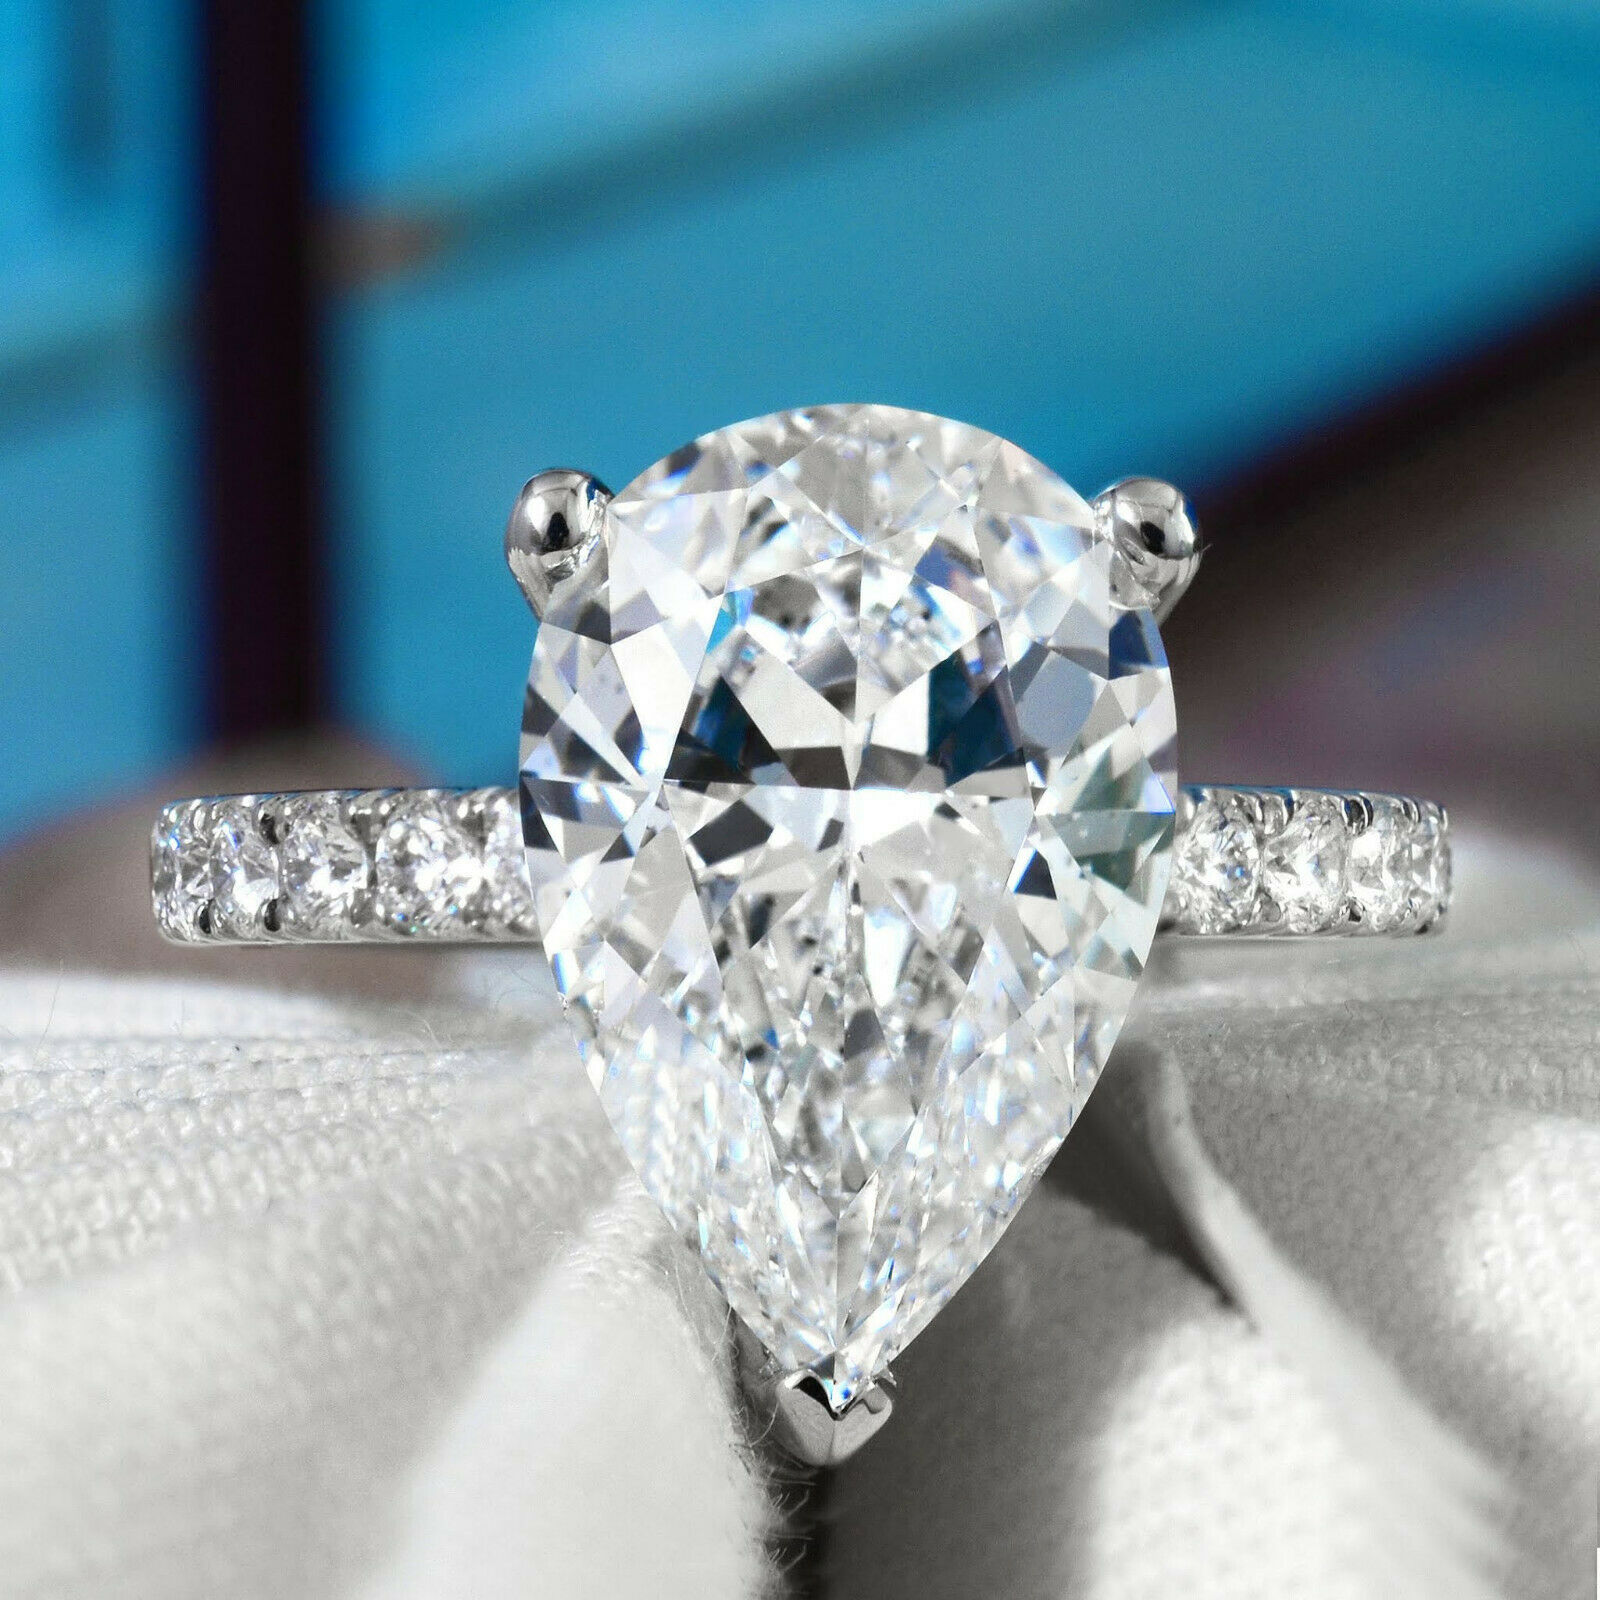 4.50 Ctw Pear Brilliant Cut Diamond Engagement Ring w/ Accents J,VS1 GIA 14K WG